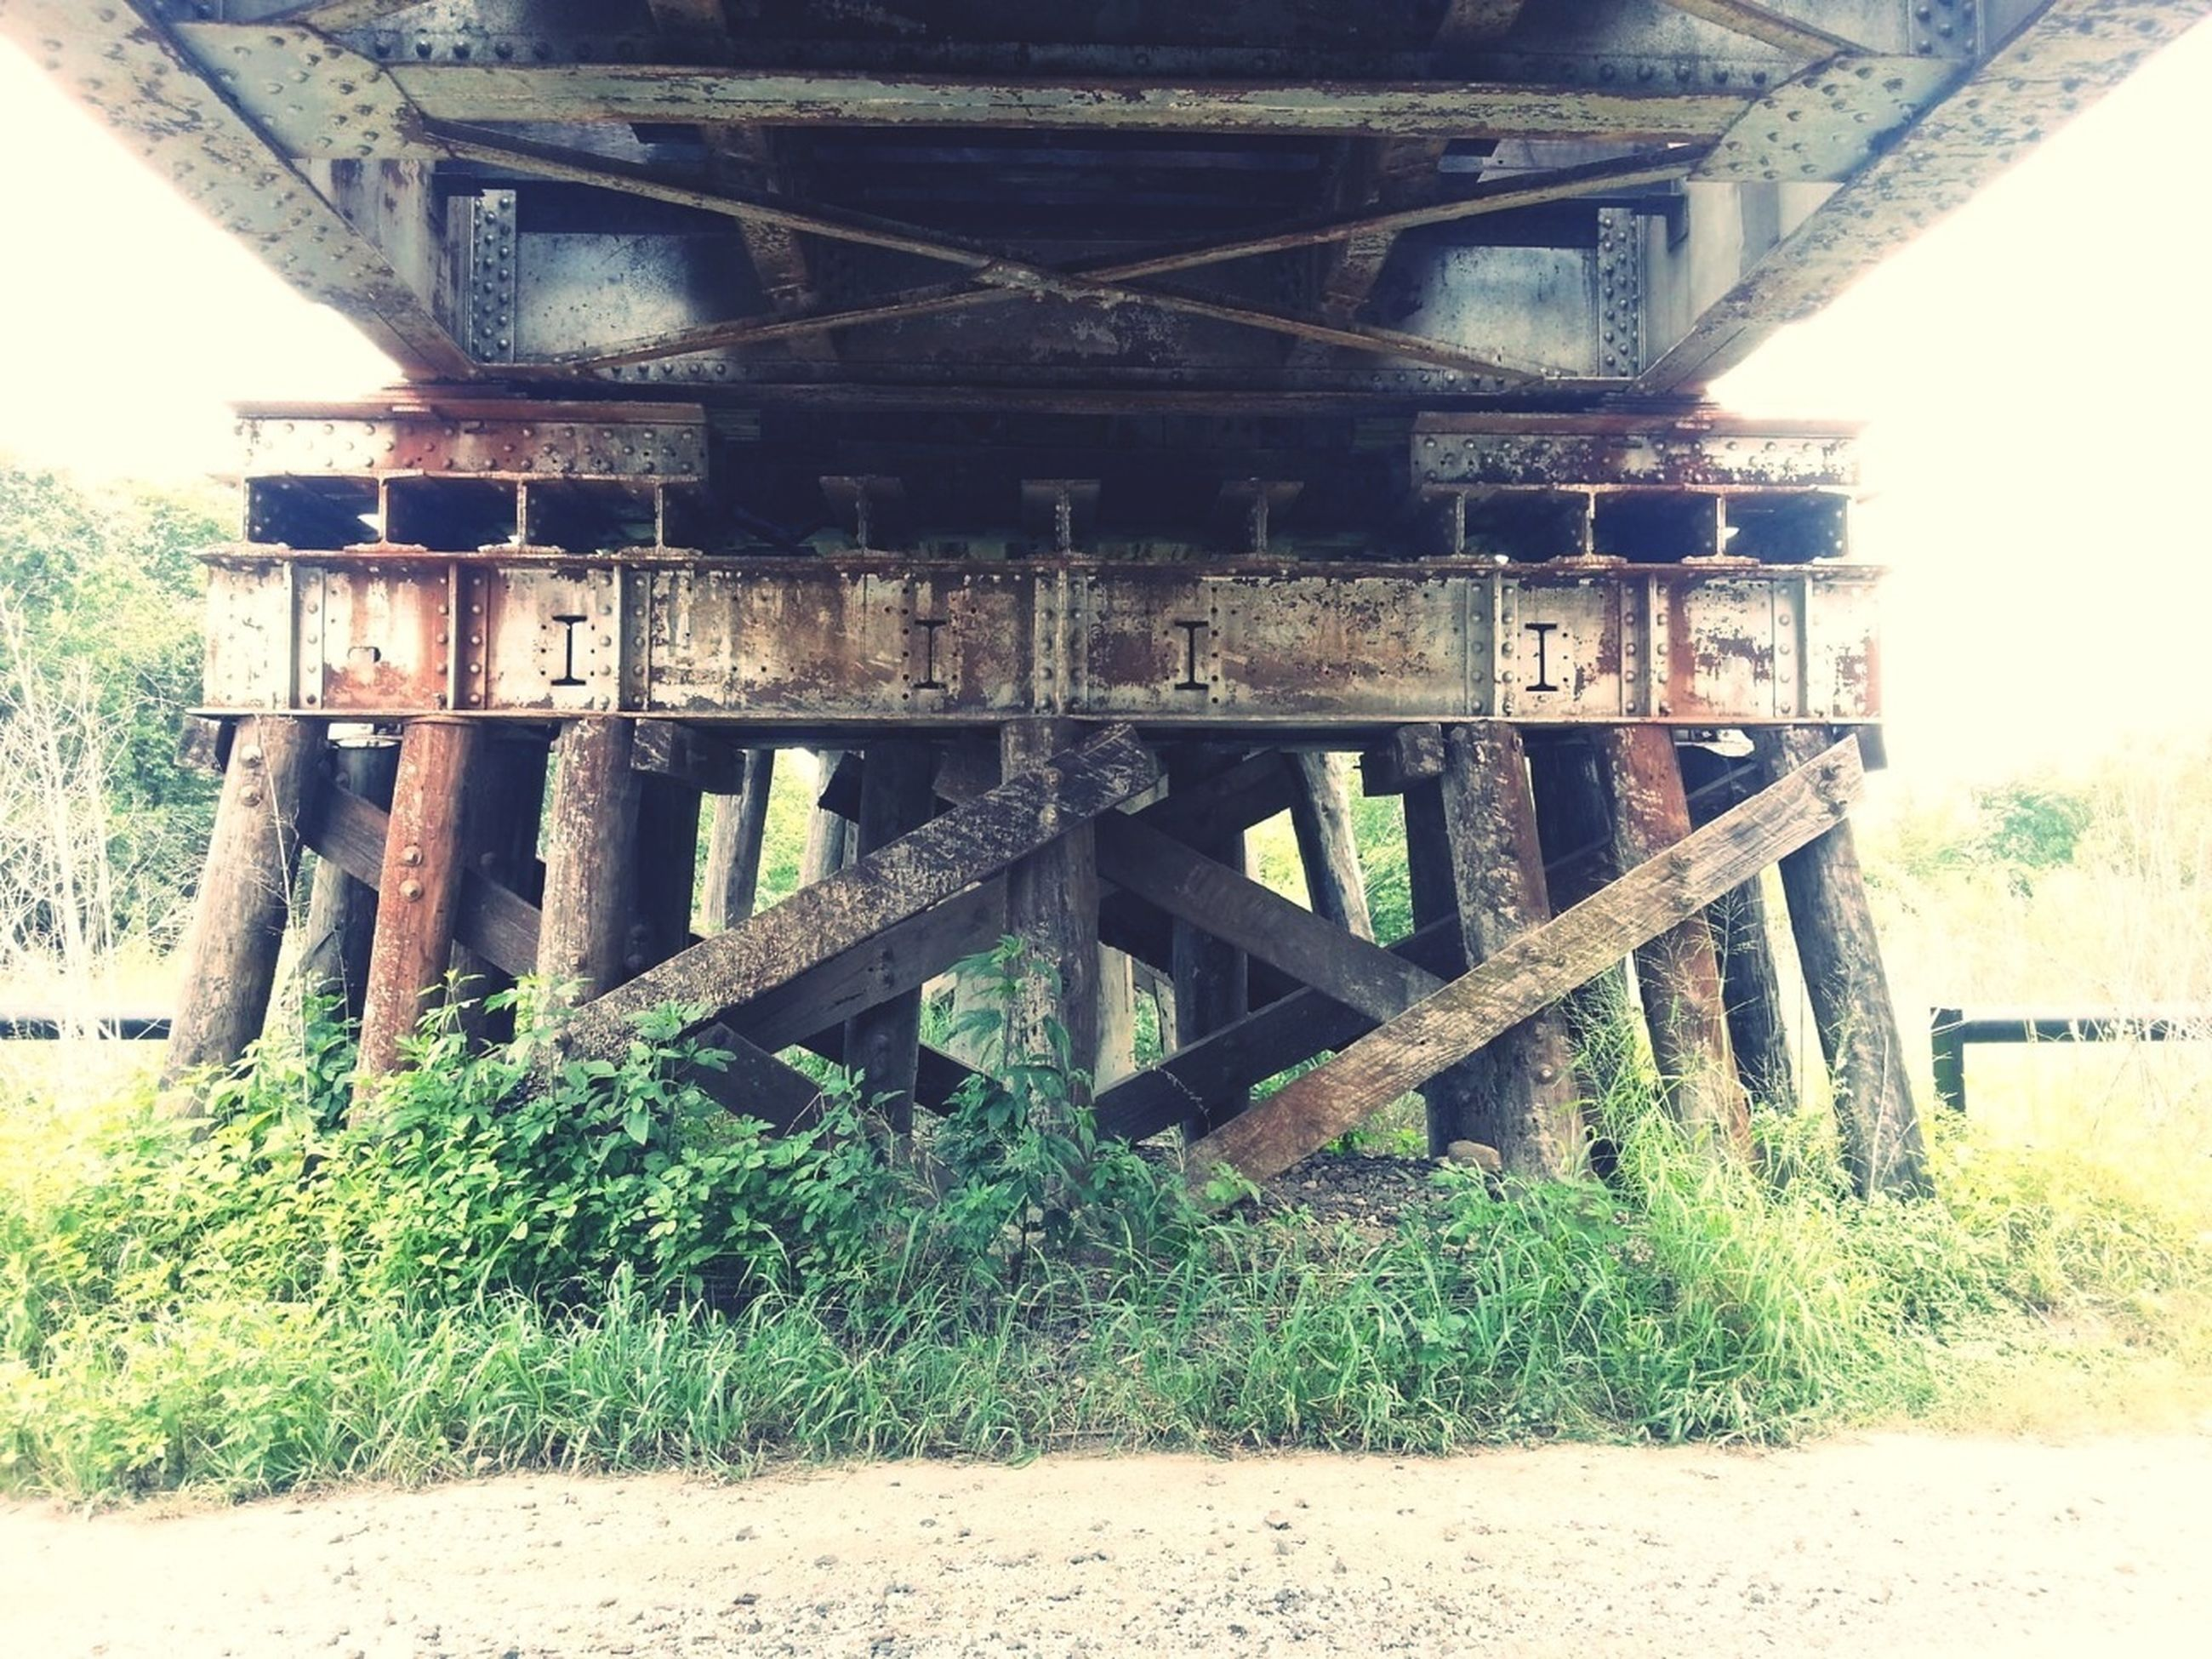 built structure, architecture, abandoned, bridge - man made structure, field, tree, old, obsolete, grass, connection, run-down, low angle view, damaged, transportation, wood - material, clear sky, deterioration, day, no people, outdoors